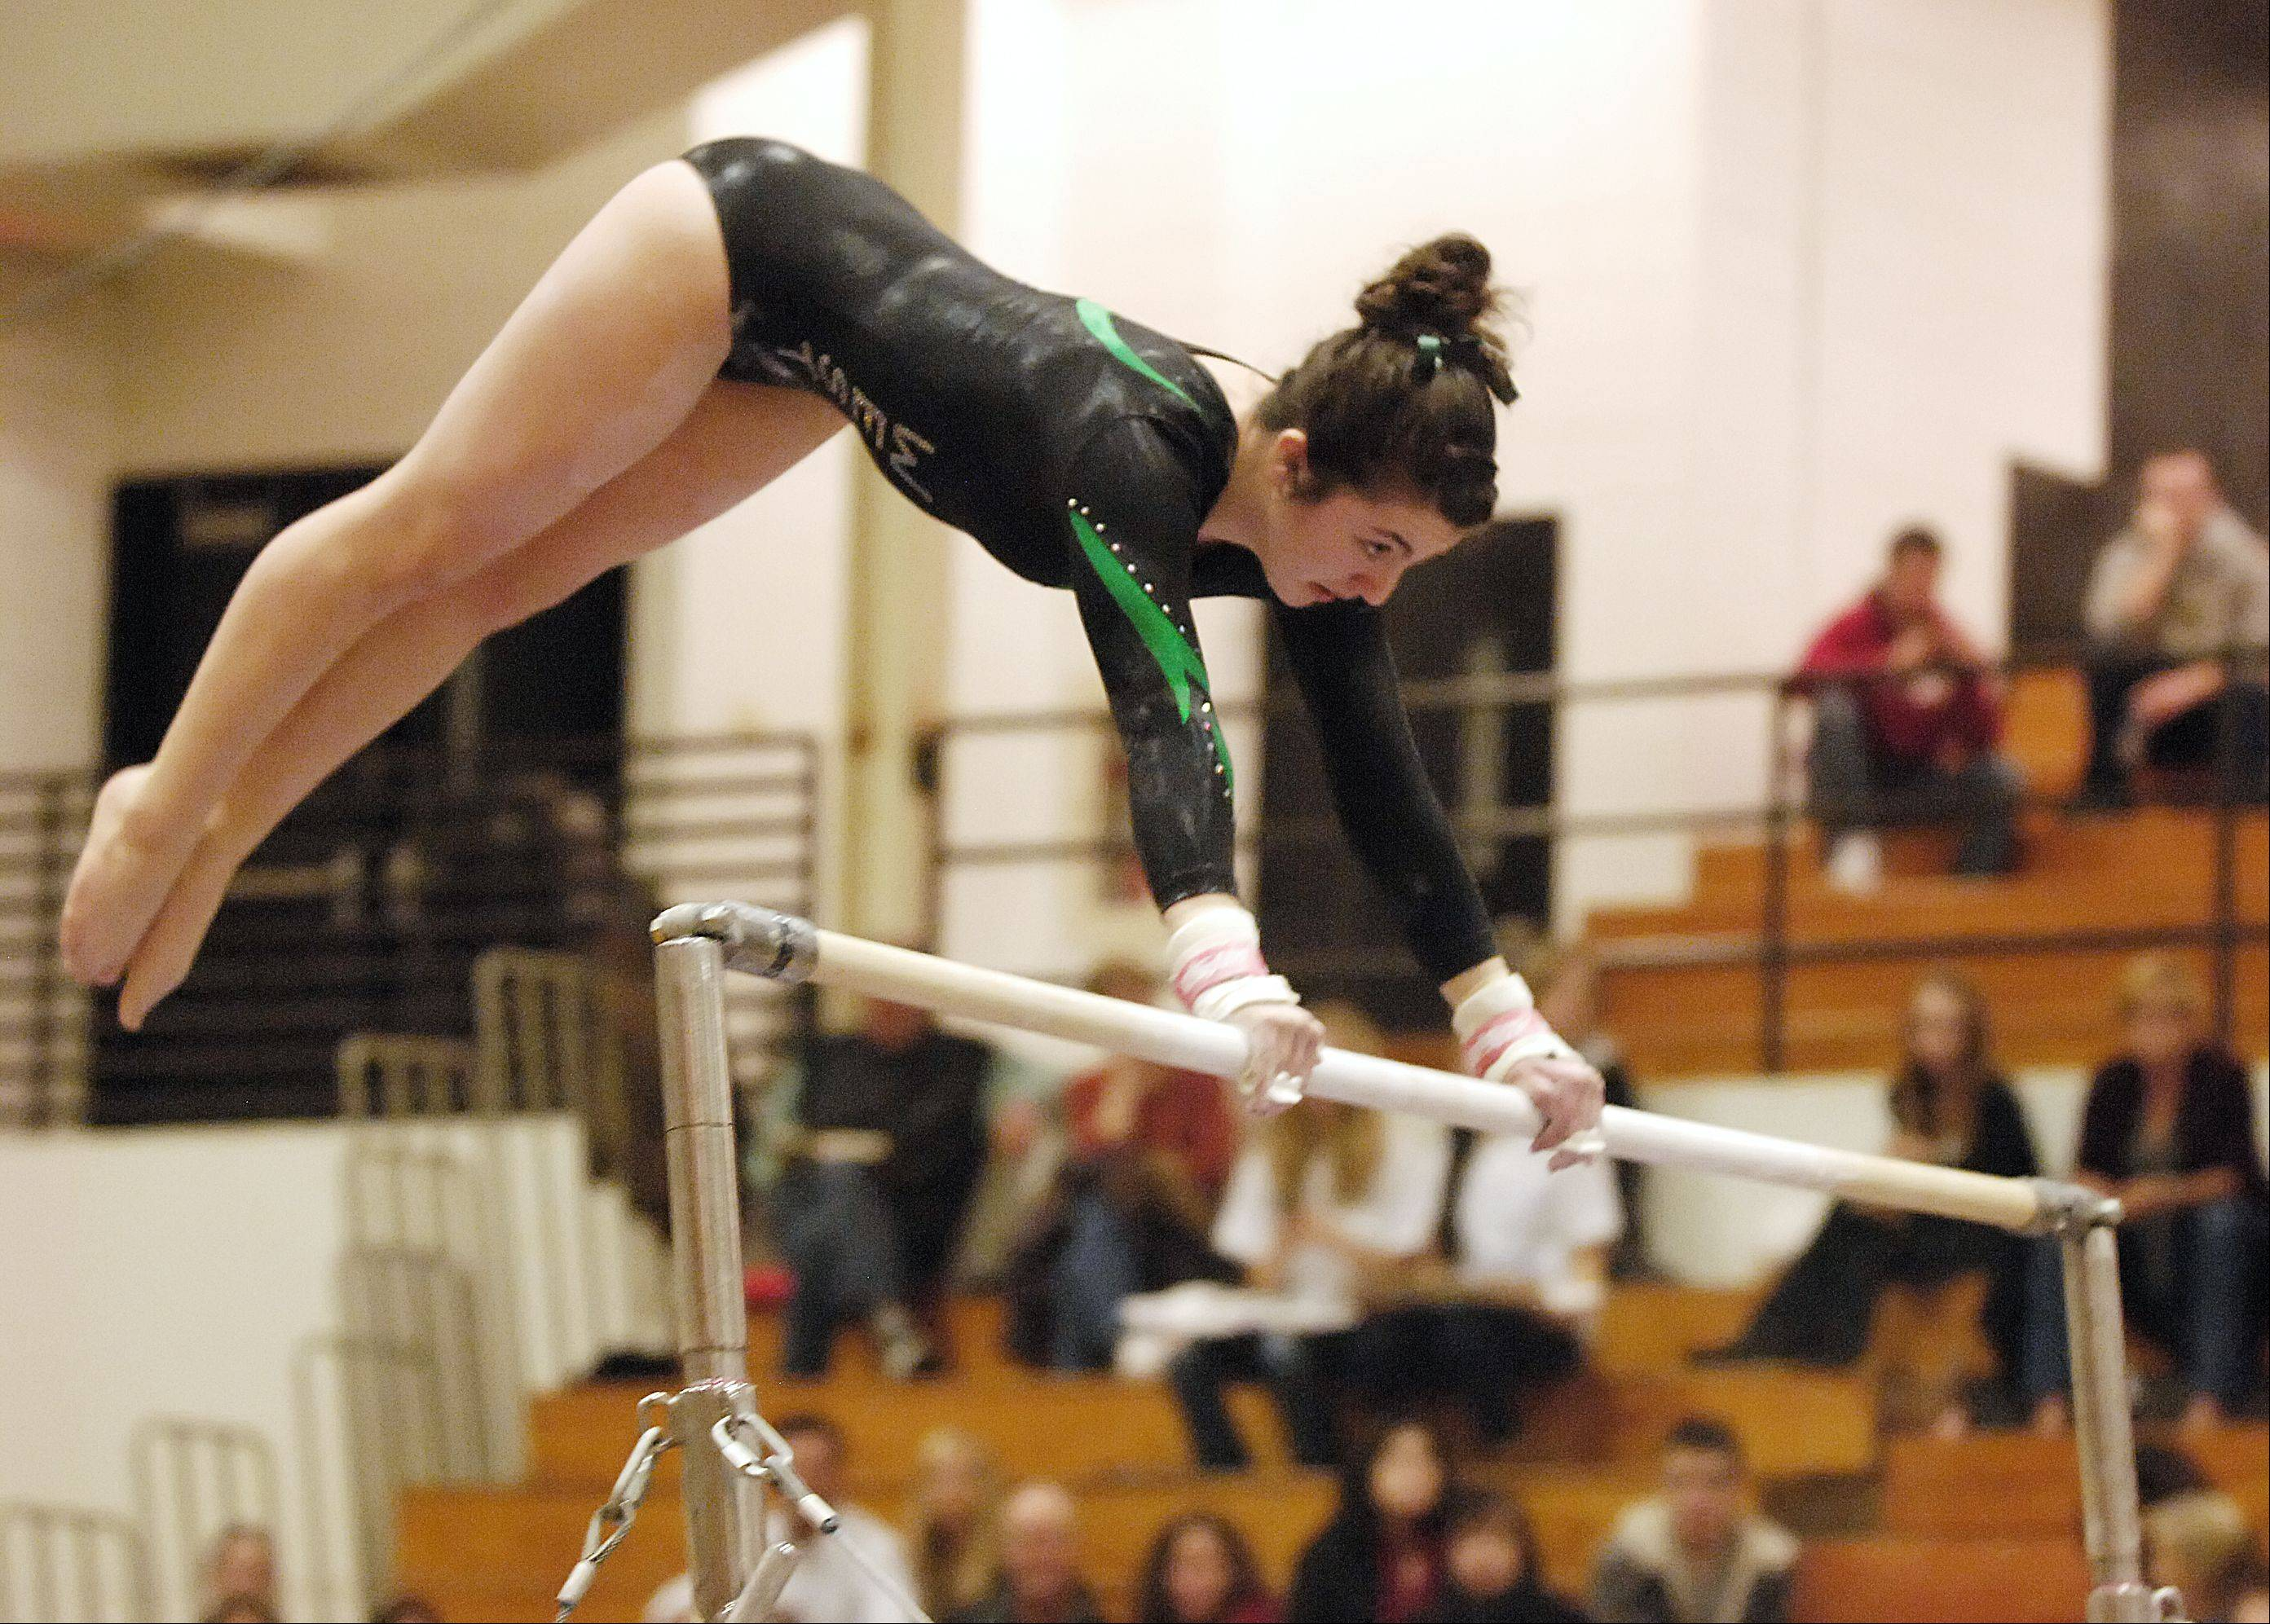 Mark Black/mblack@dailyherald.comMissy Guzman of Glenbard West performs on the bars during the girls gymnastics gectional tournament at Glenbard North High School.